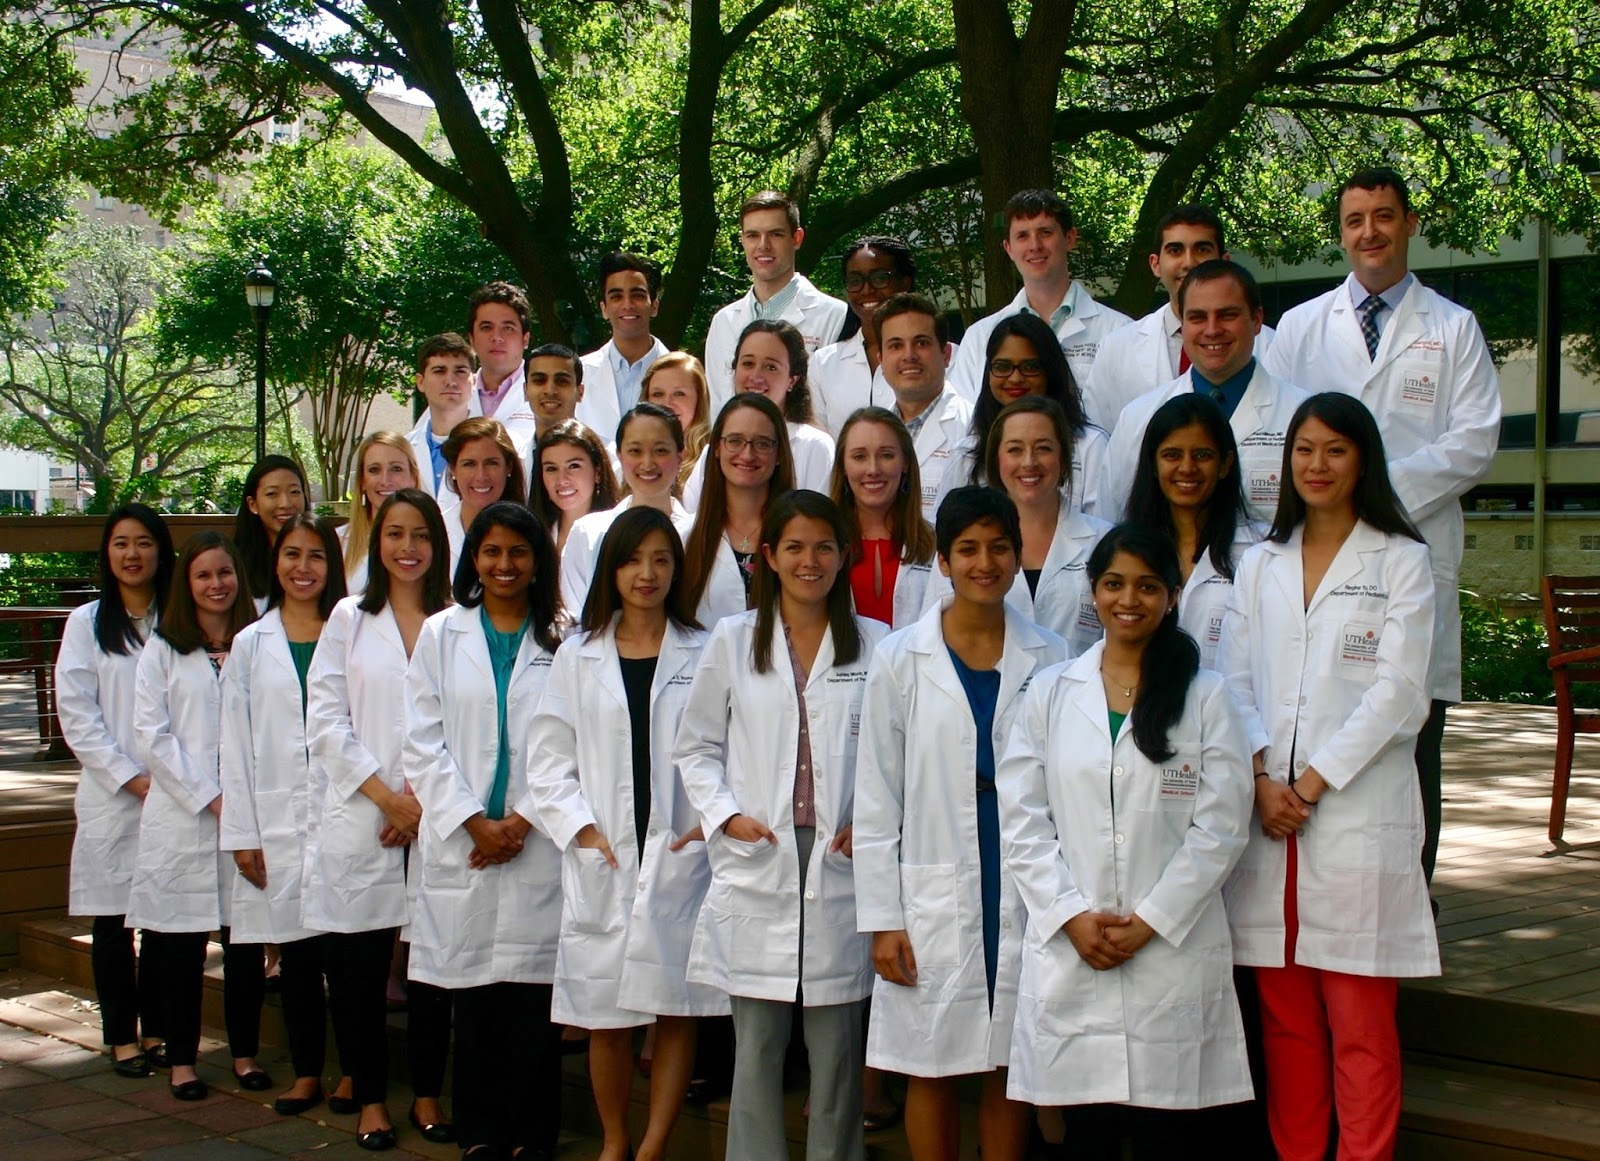 What is possibly the worst student a medical school can accept?